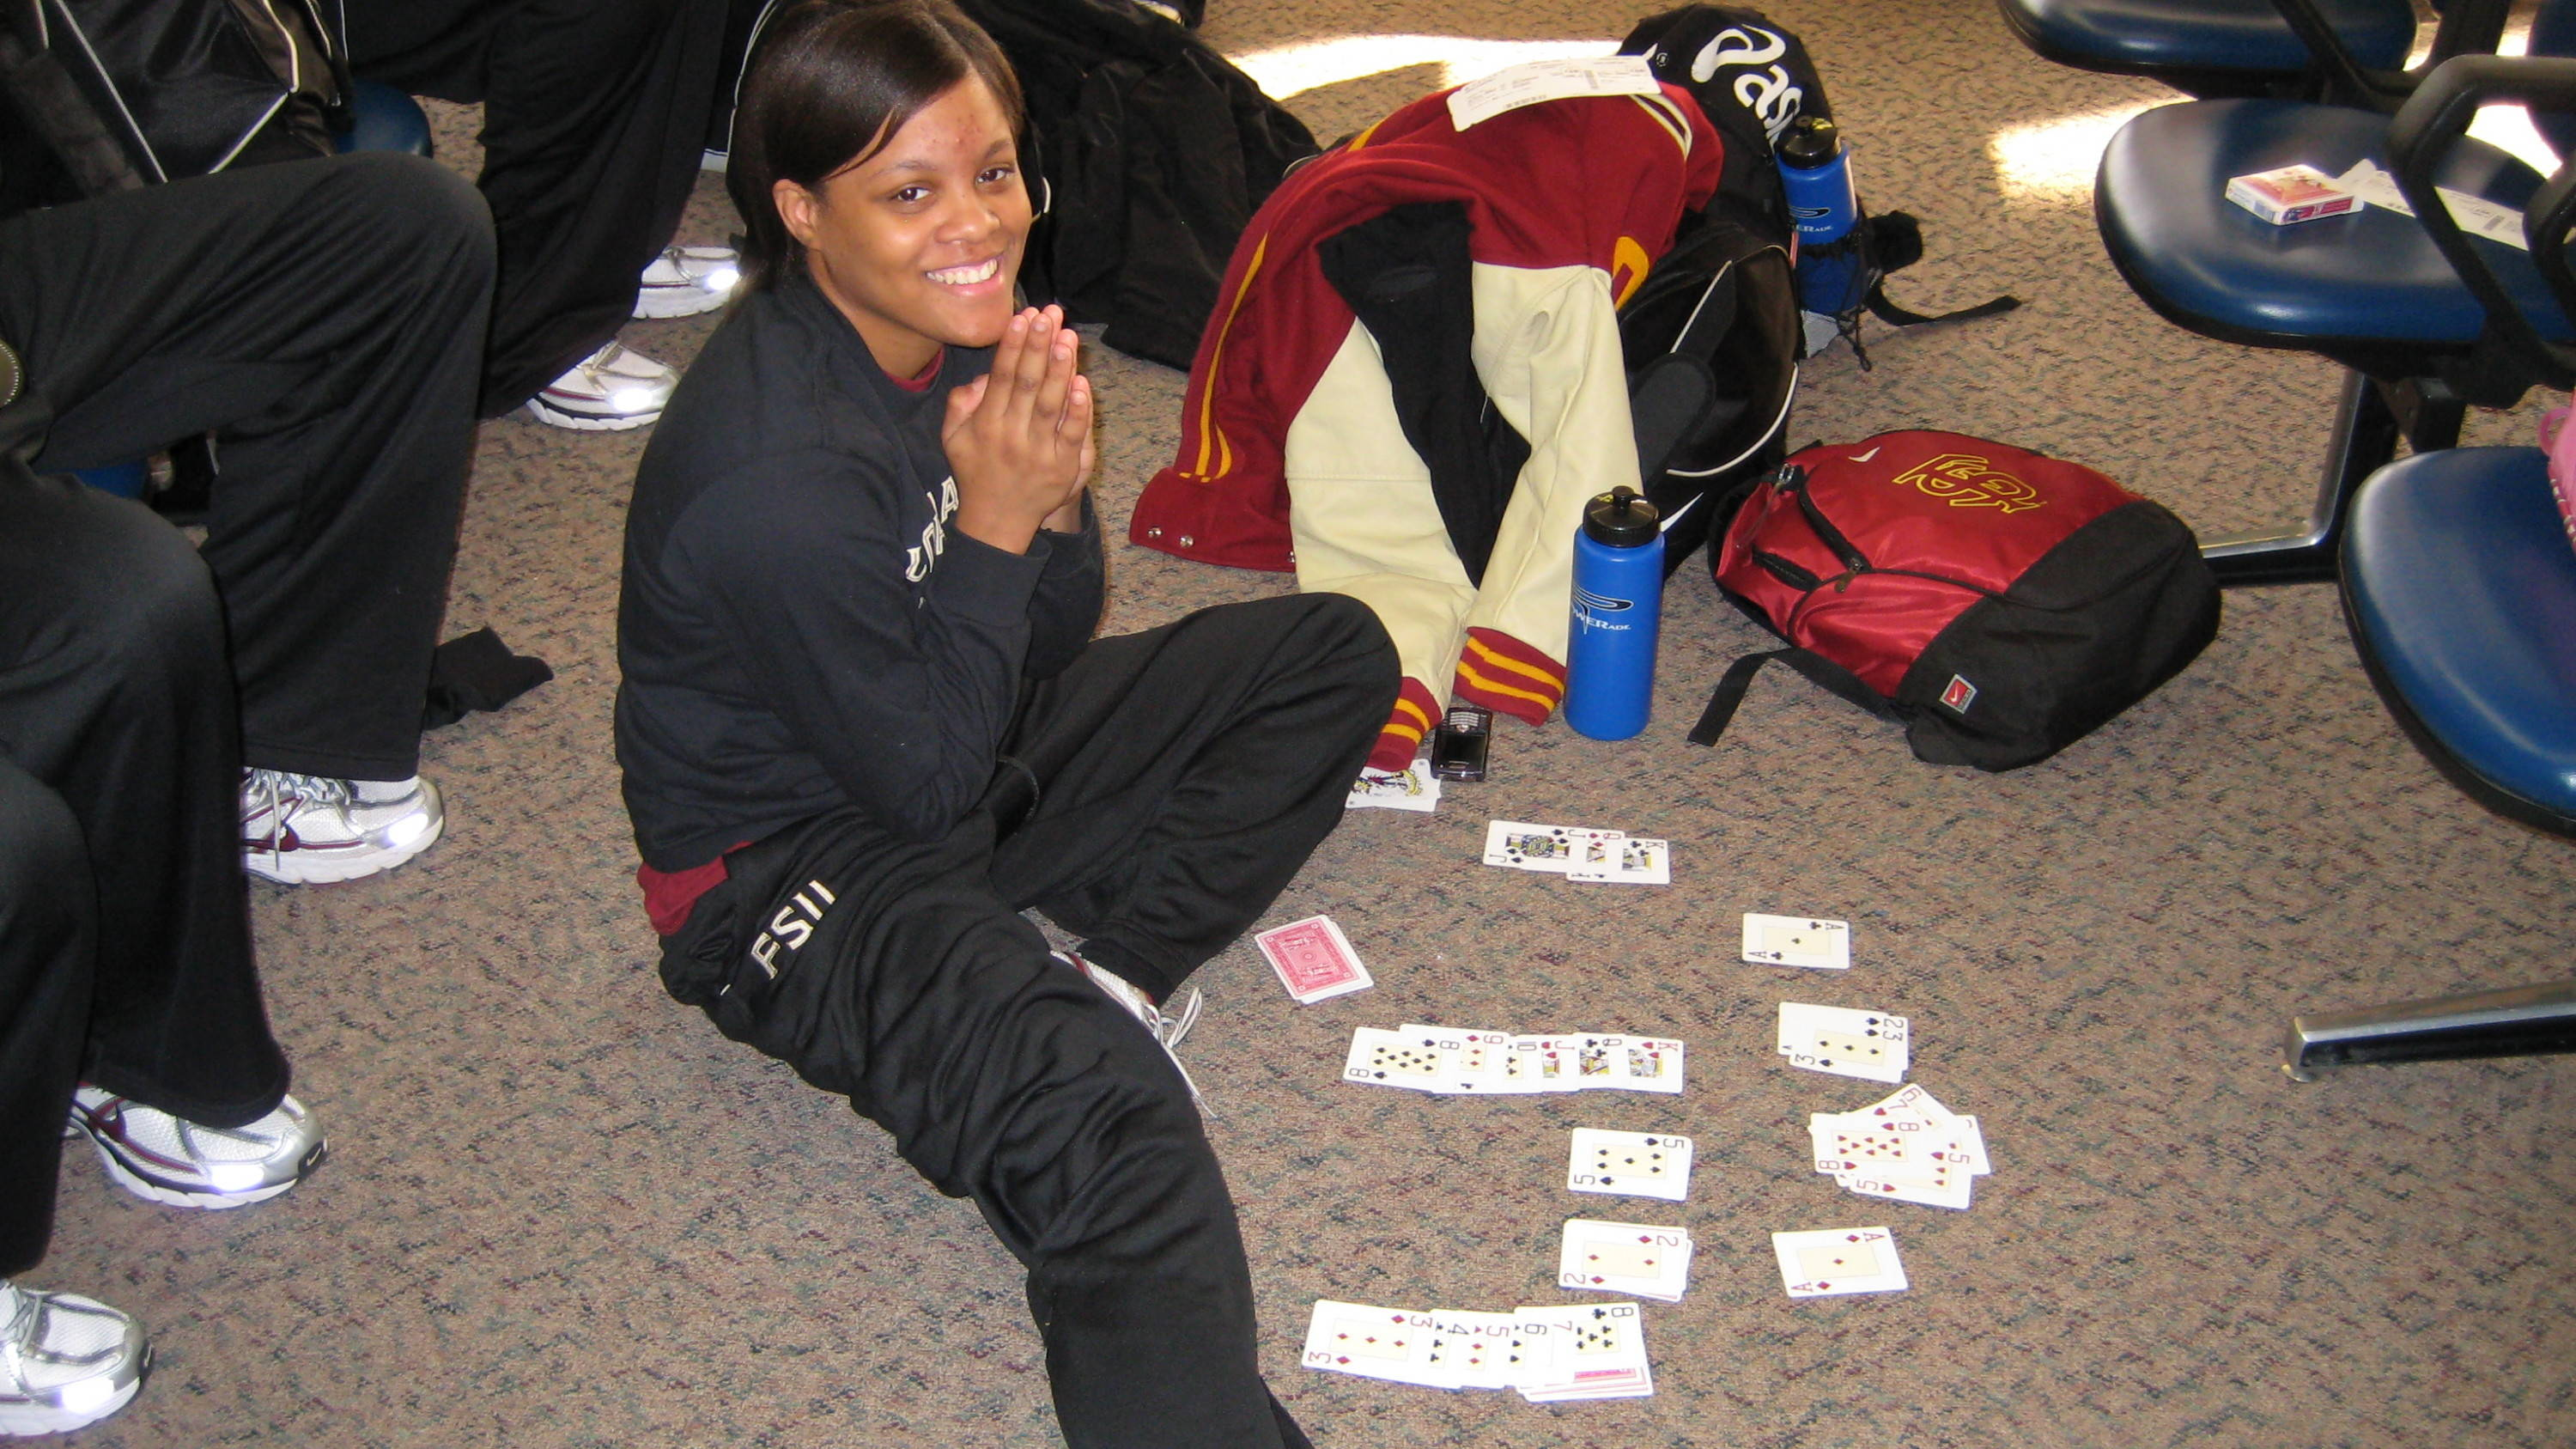 Sept. 19 ... Courtney Ward is pictured here passing the time while waiting to head off on another trip with the women's basketball team.